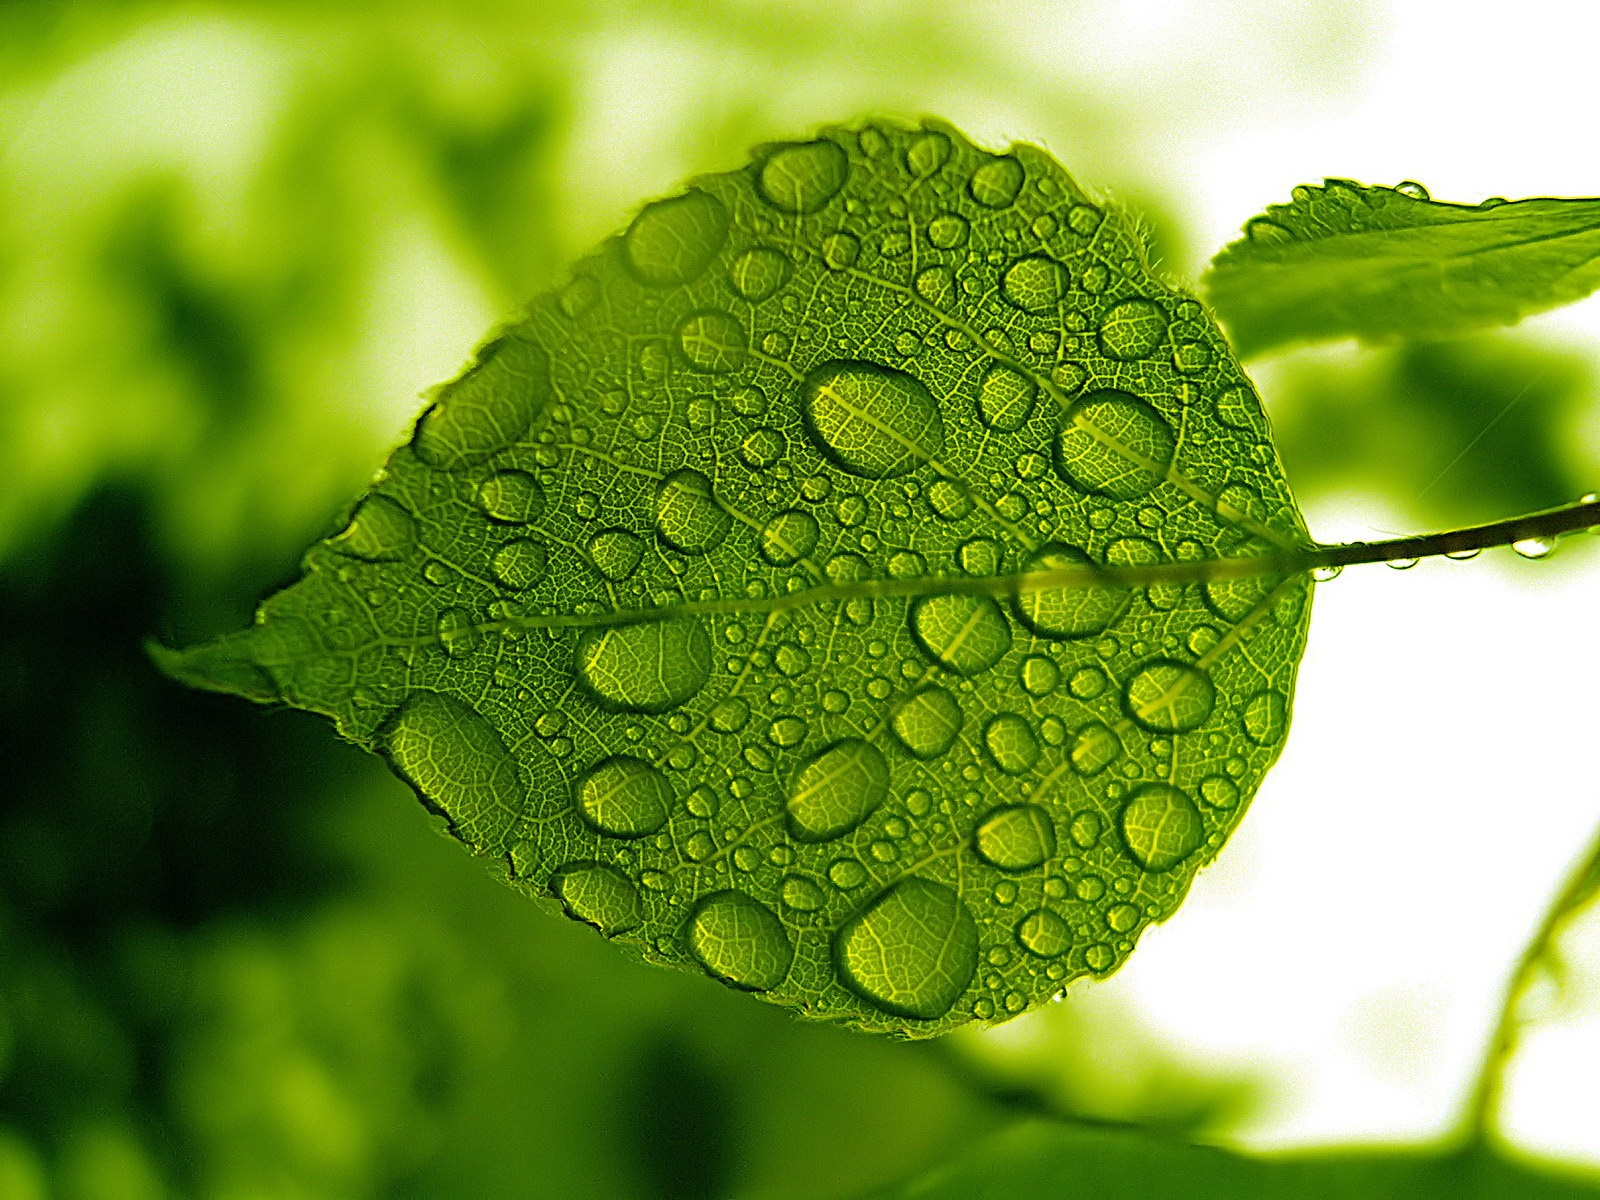 Water Drops Green Leaf Wallpaper | Download cool HD wallpapers here.